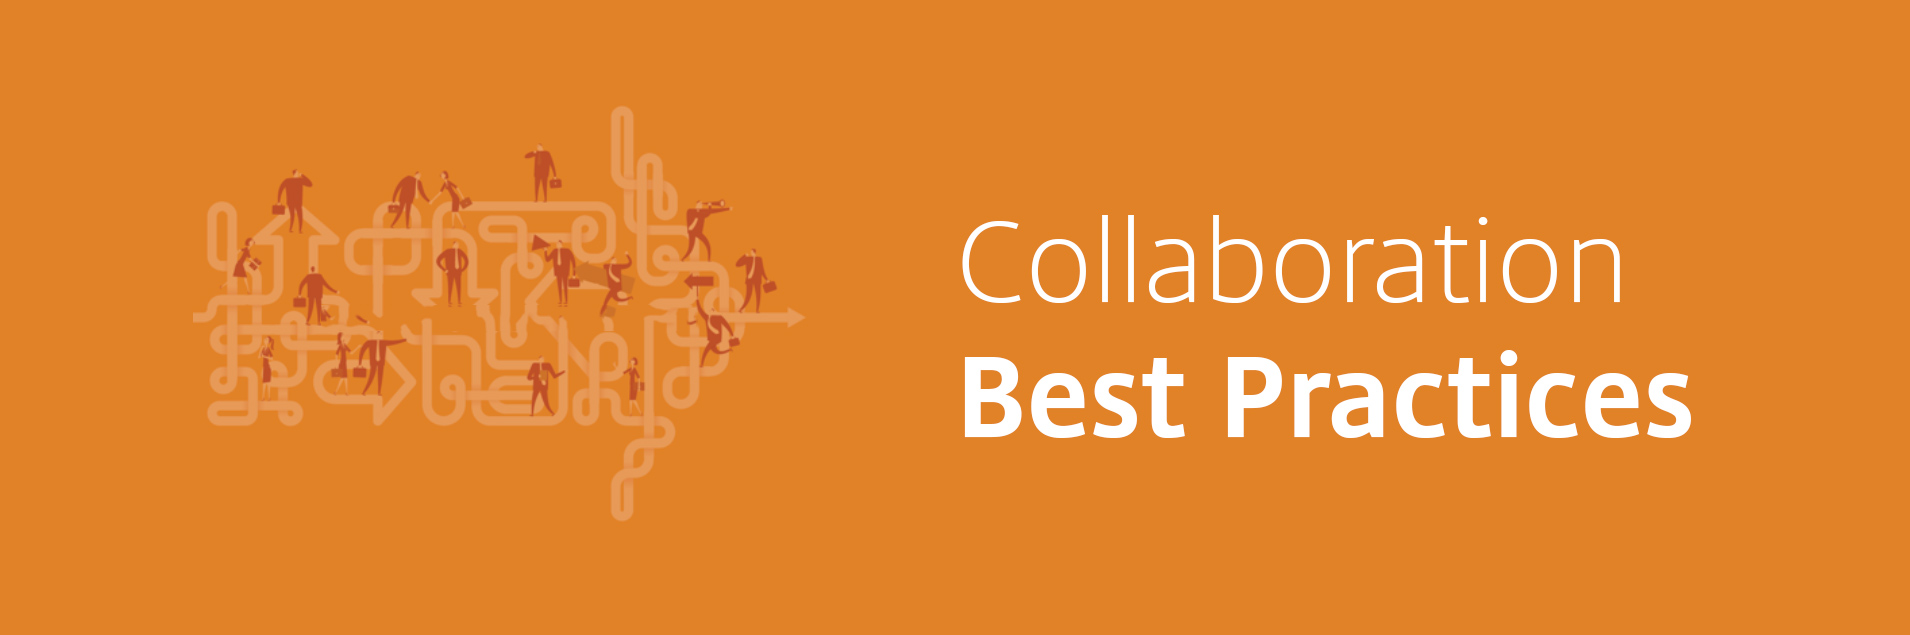 Collaboration Best Practices